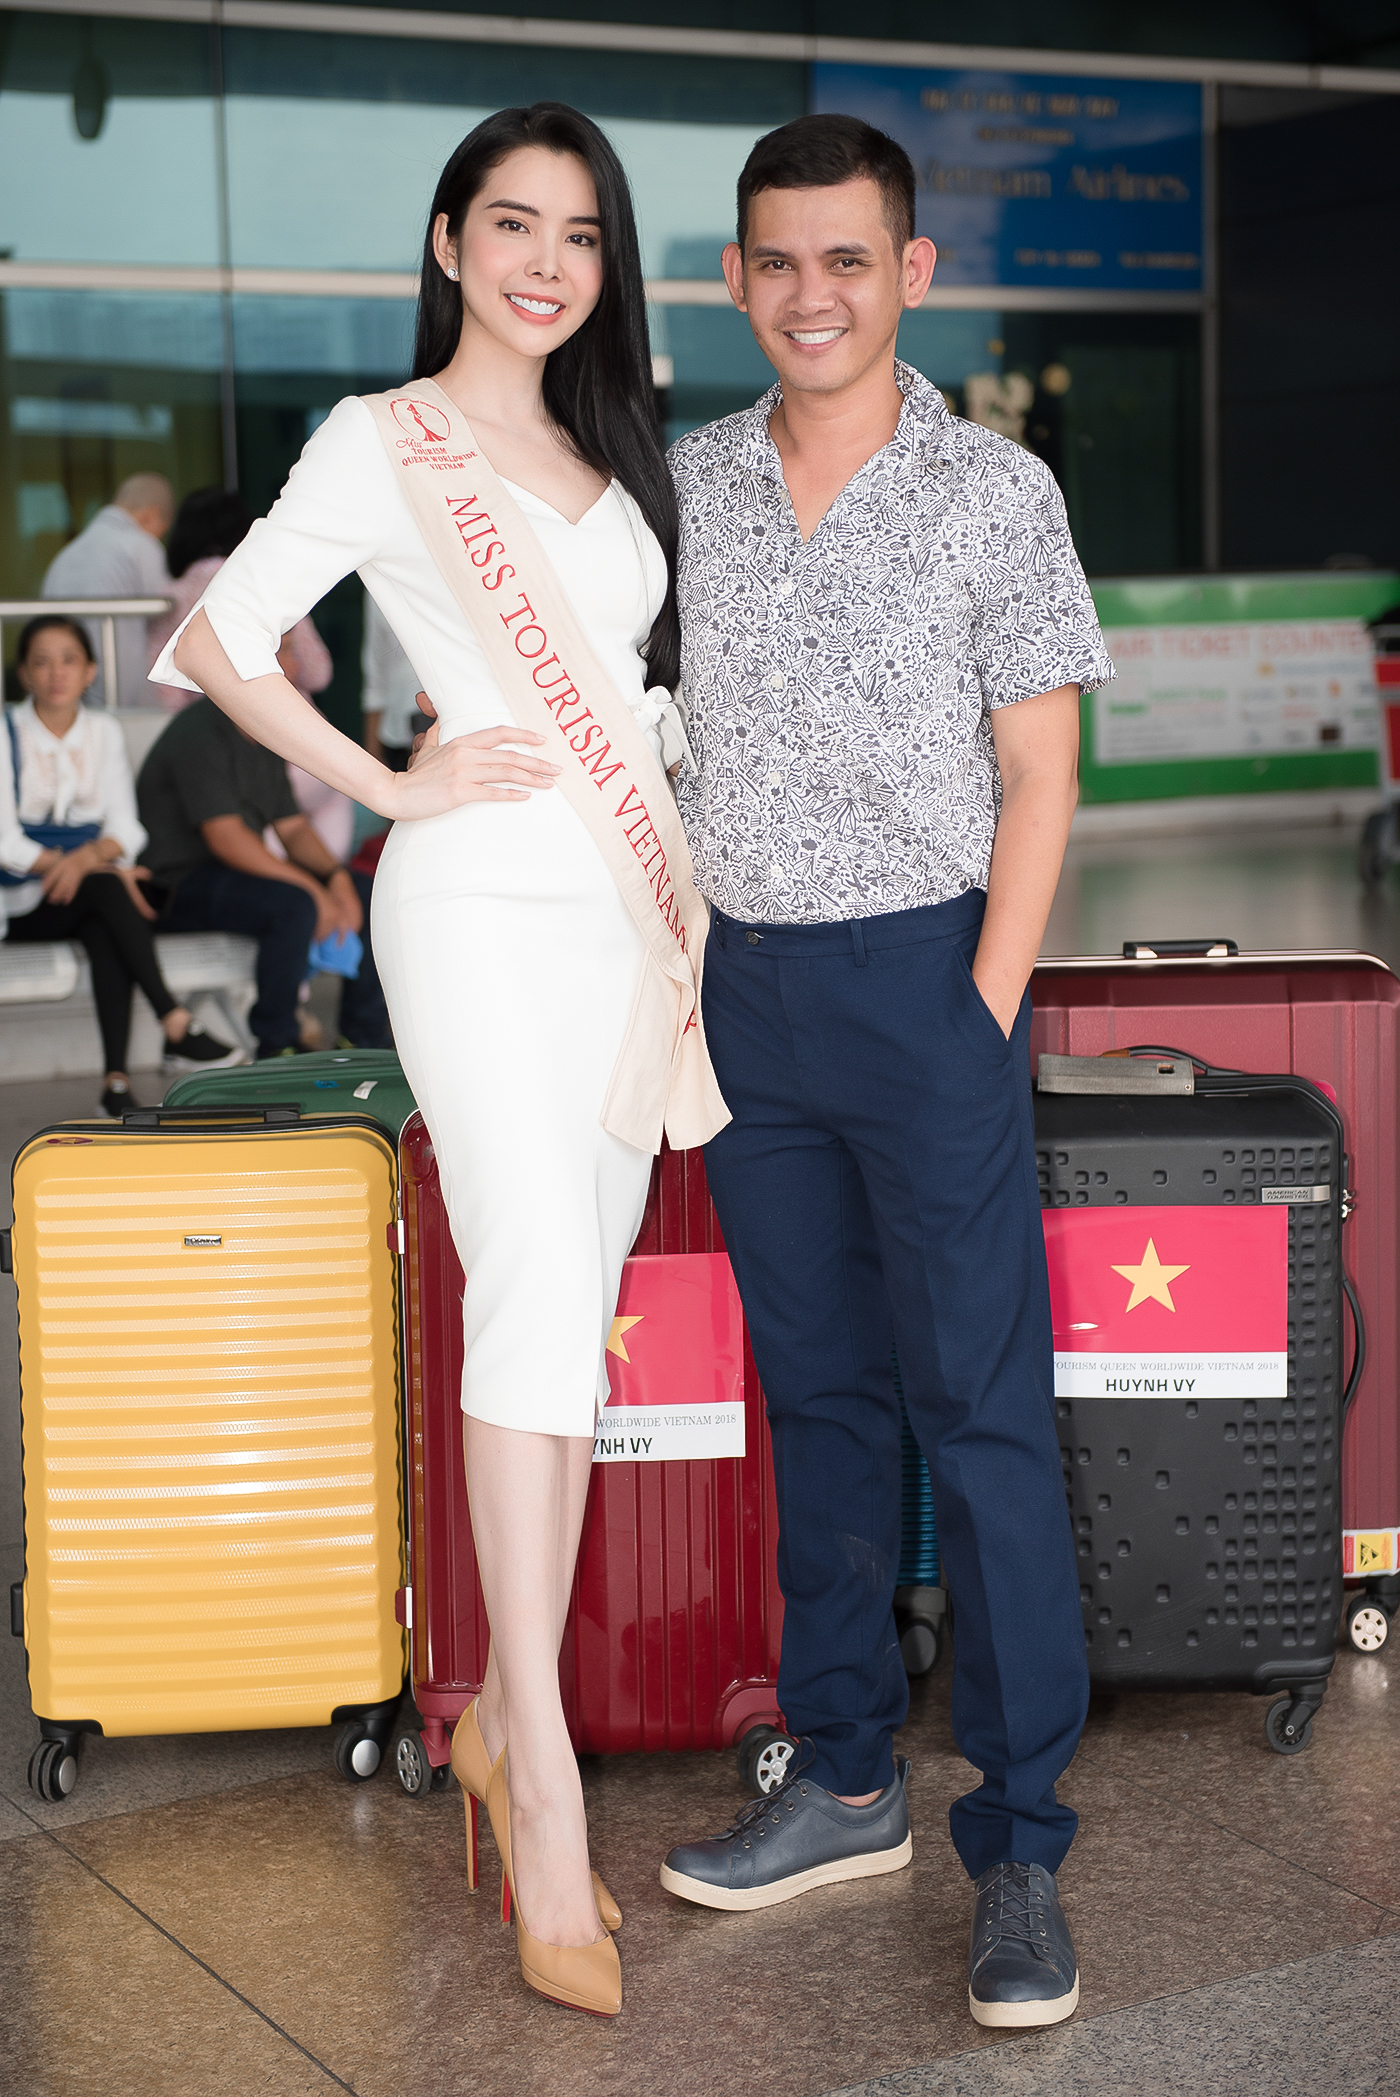 Lien Binh Phat tien Huynh Vy di thi Miss Tourism Queen Worldwide-Hinh-8